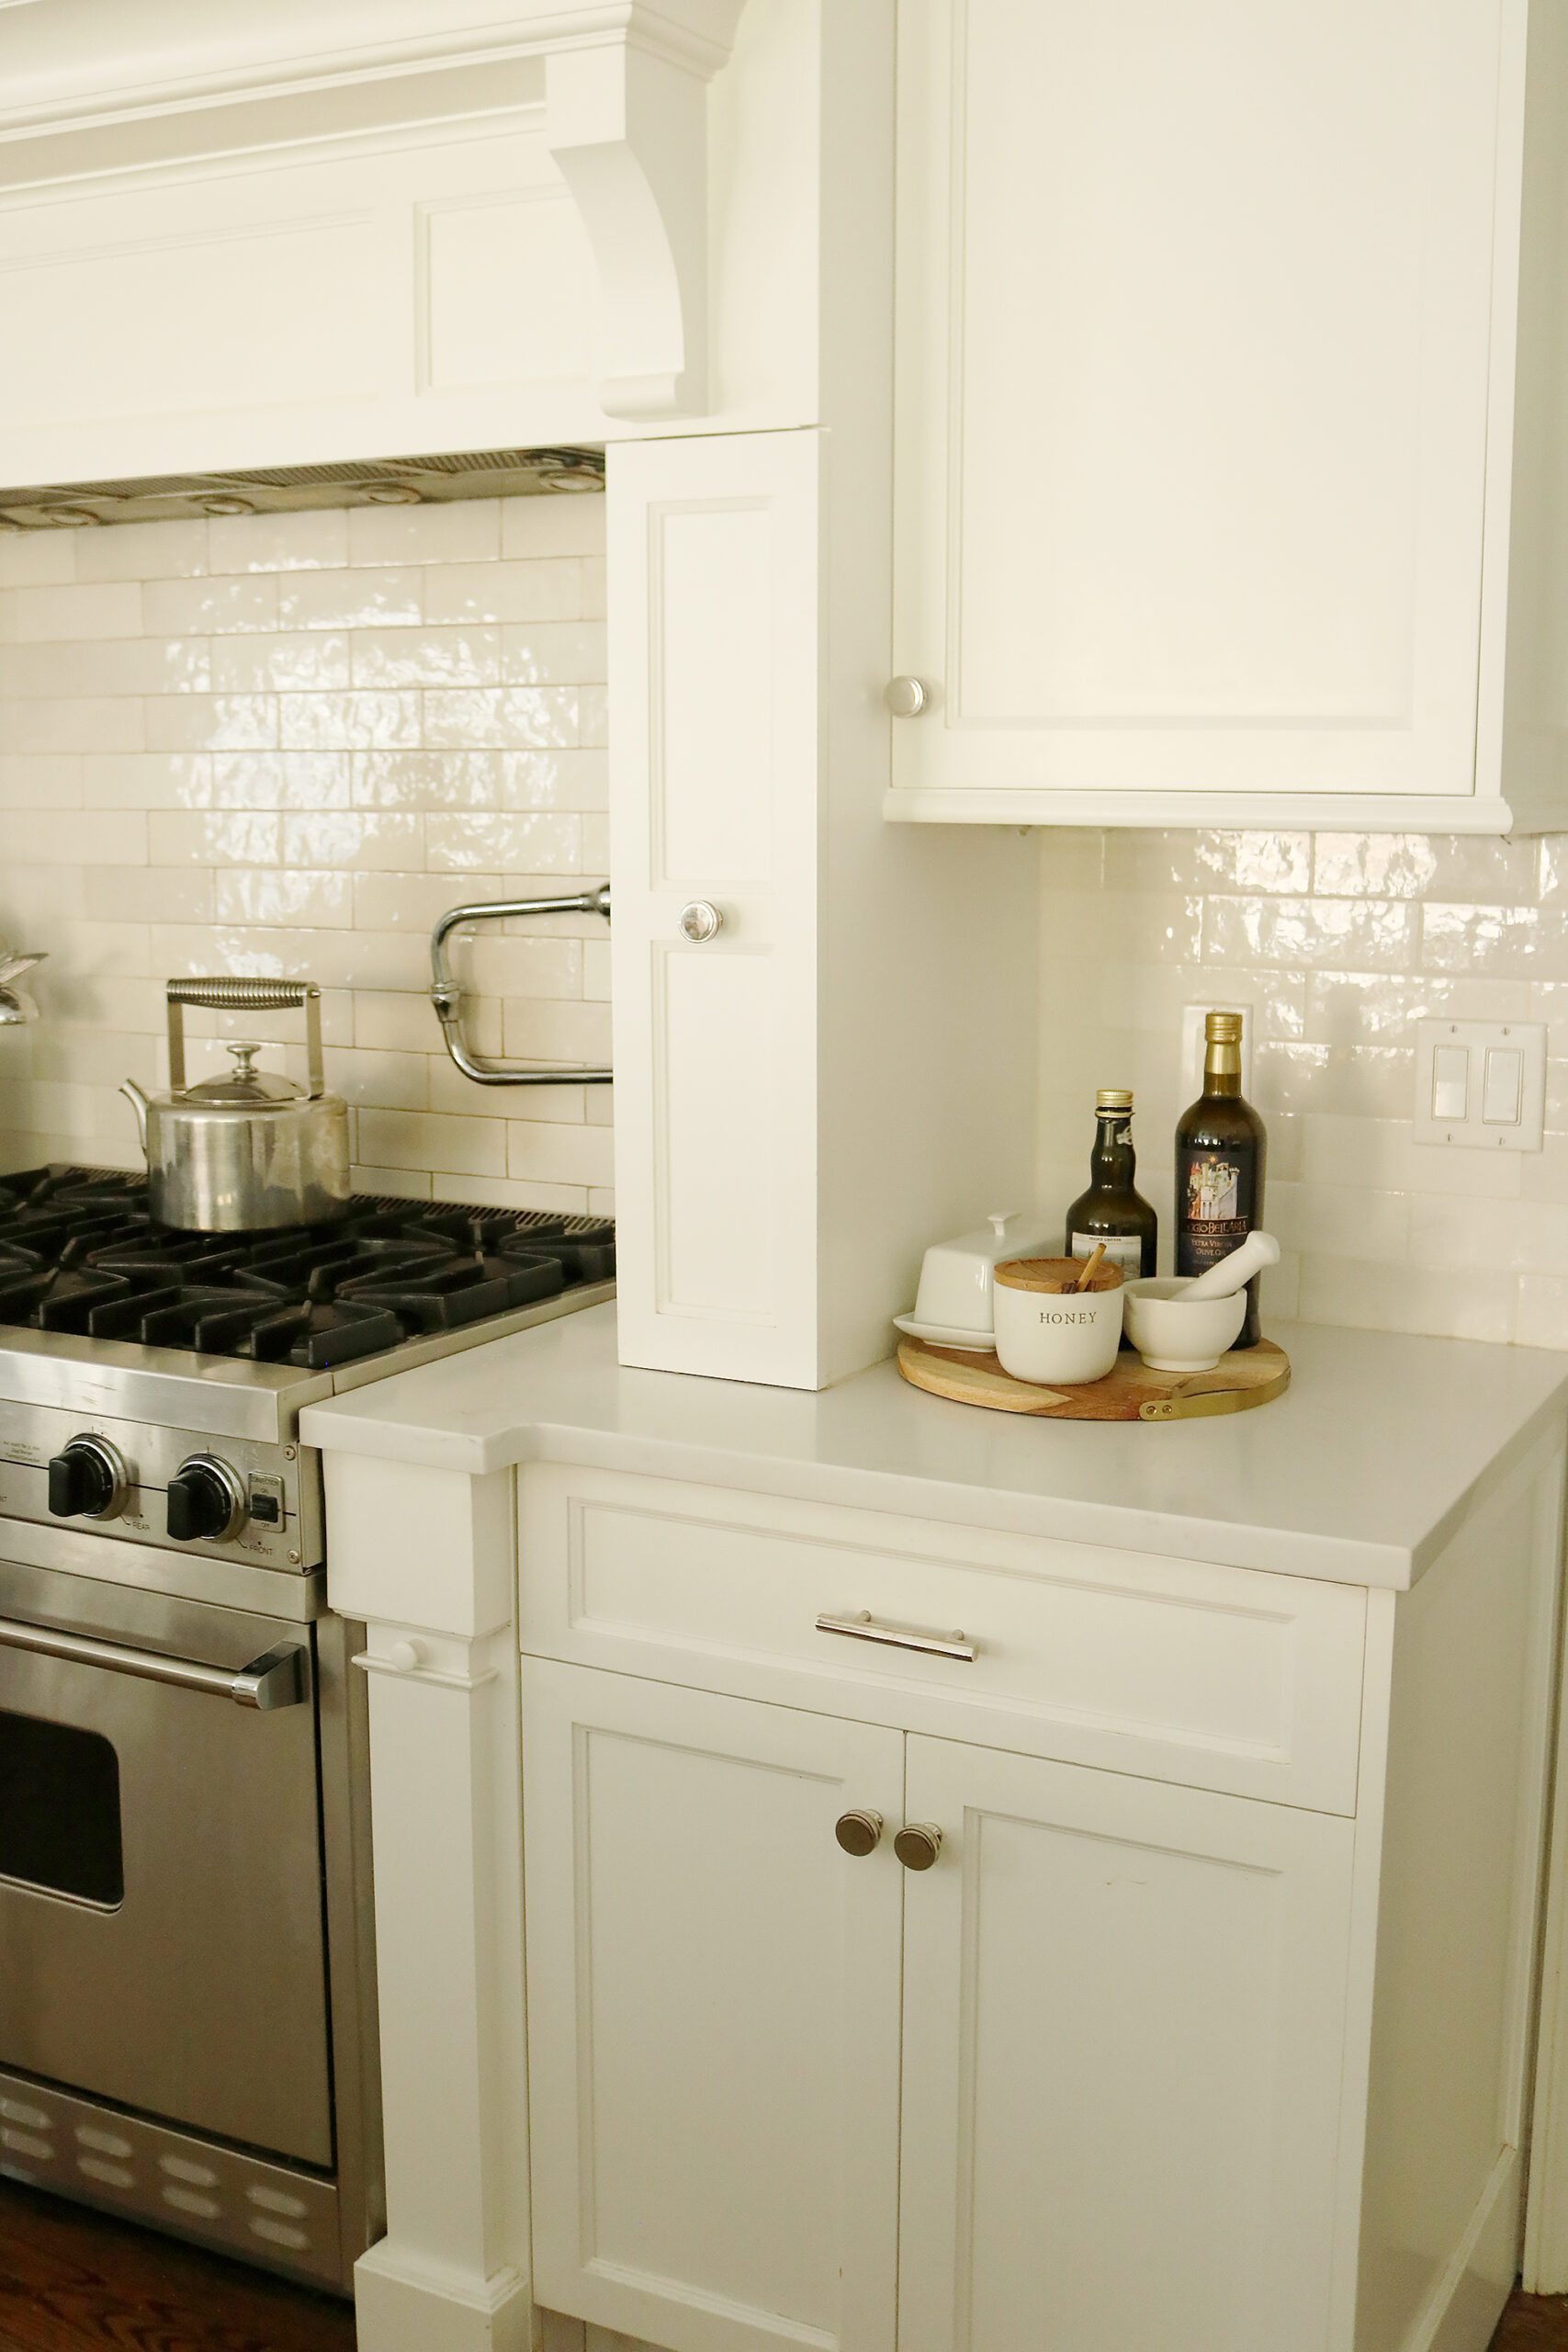 Give your Kitchen refresh with these must-have favorite kitchen items that will help keep it clean, organized and stylish || Darling Darleen Top CT Lifestyle Blogger #darlingdarleen #kitchenitems